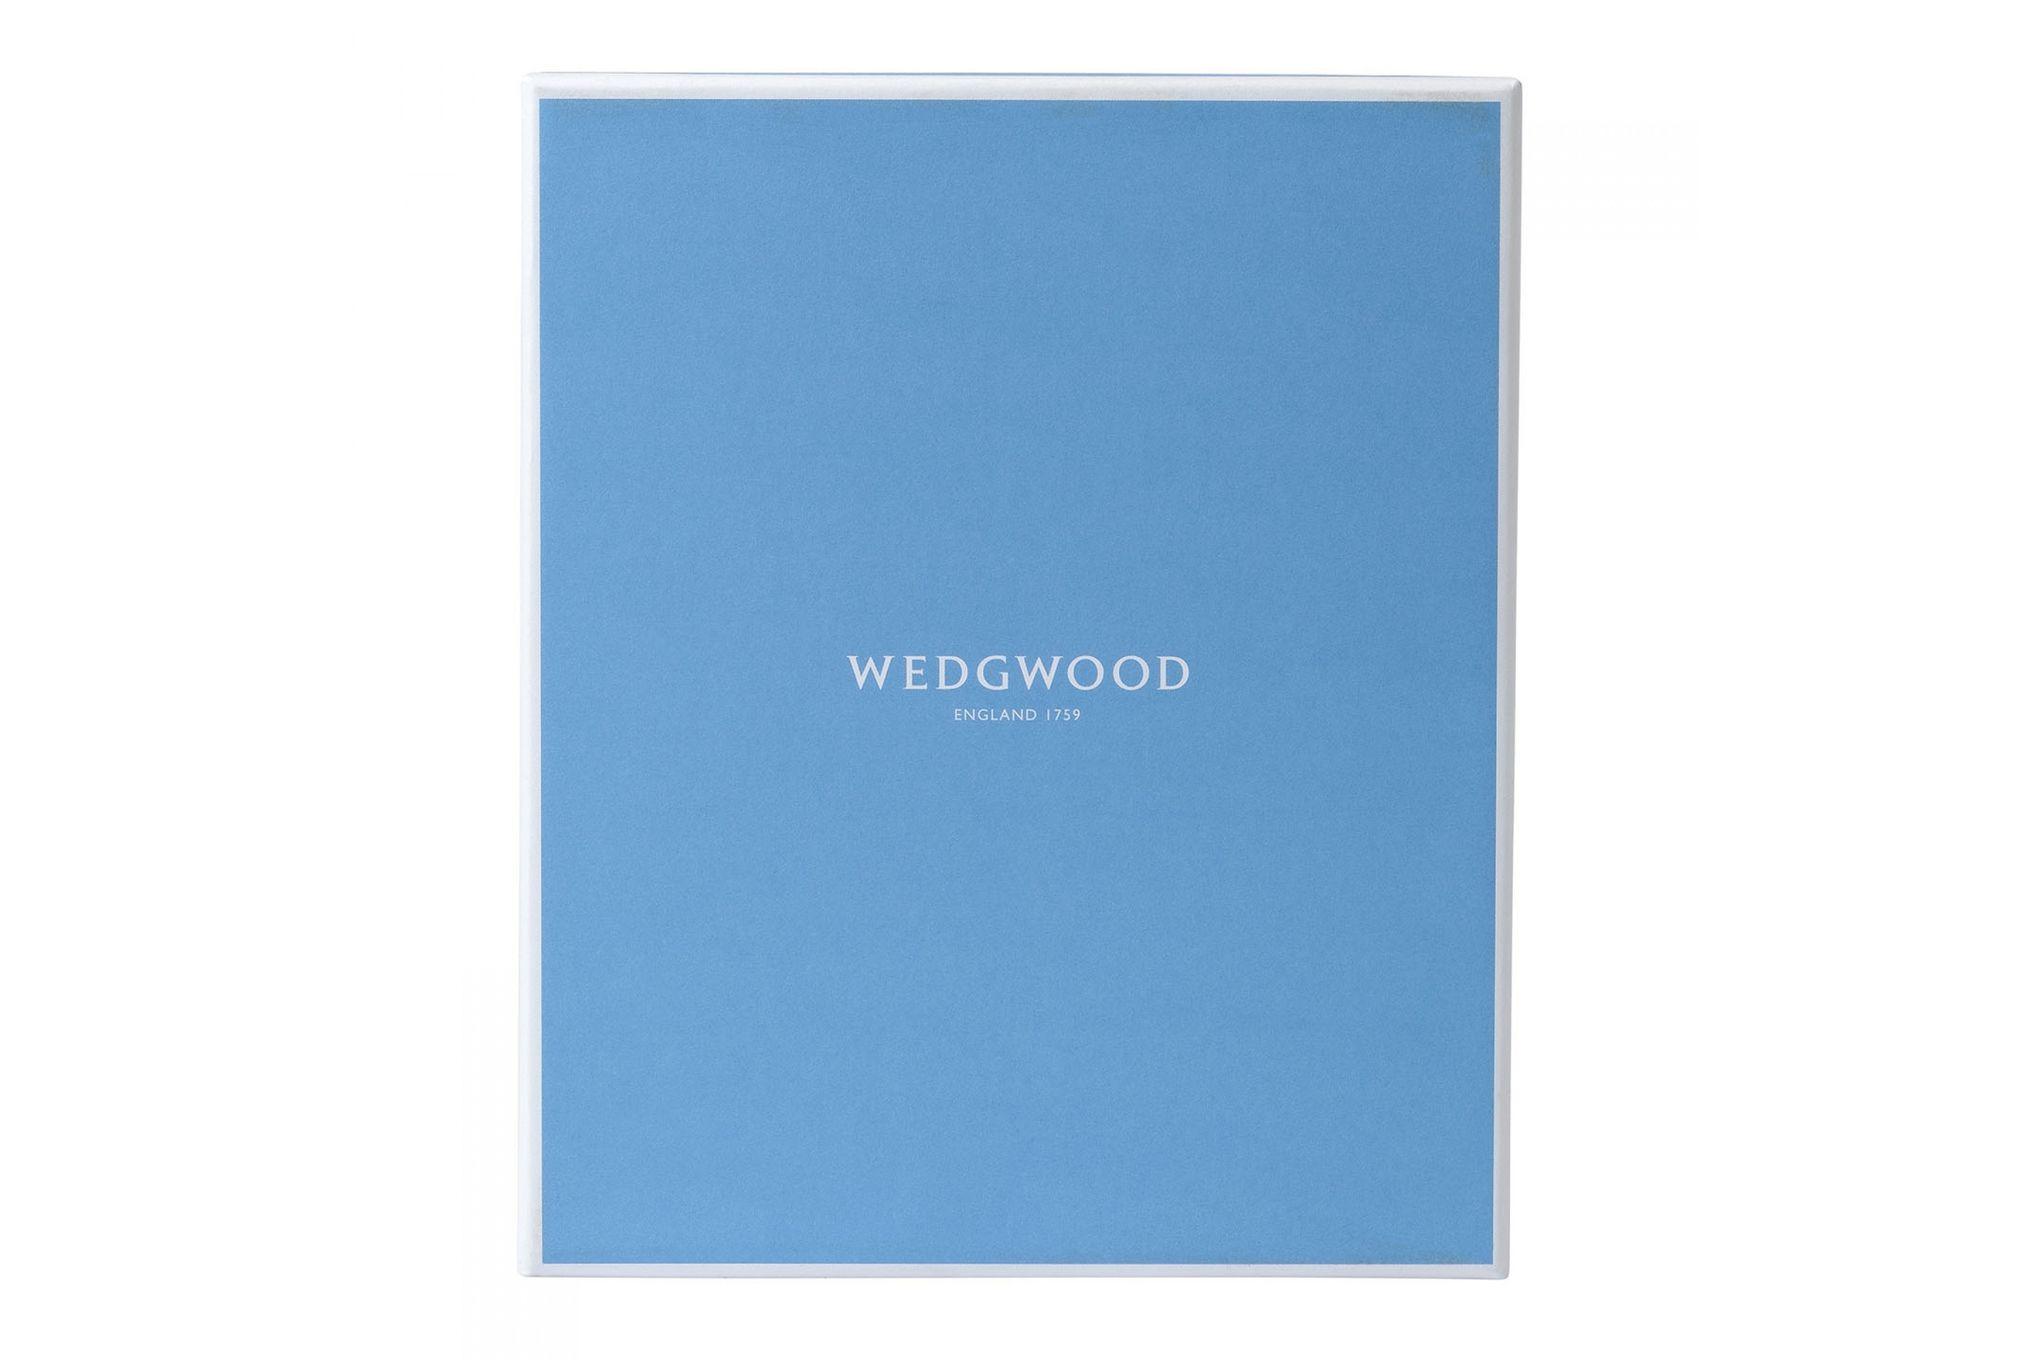 "Wedgwood Wonderlust Photo Frame Crimson Jewel - Boxed 4 x 6"" thumb 2"